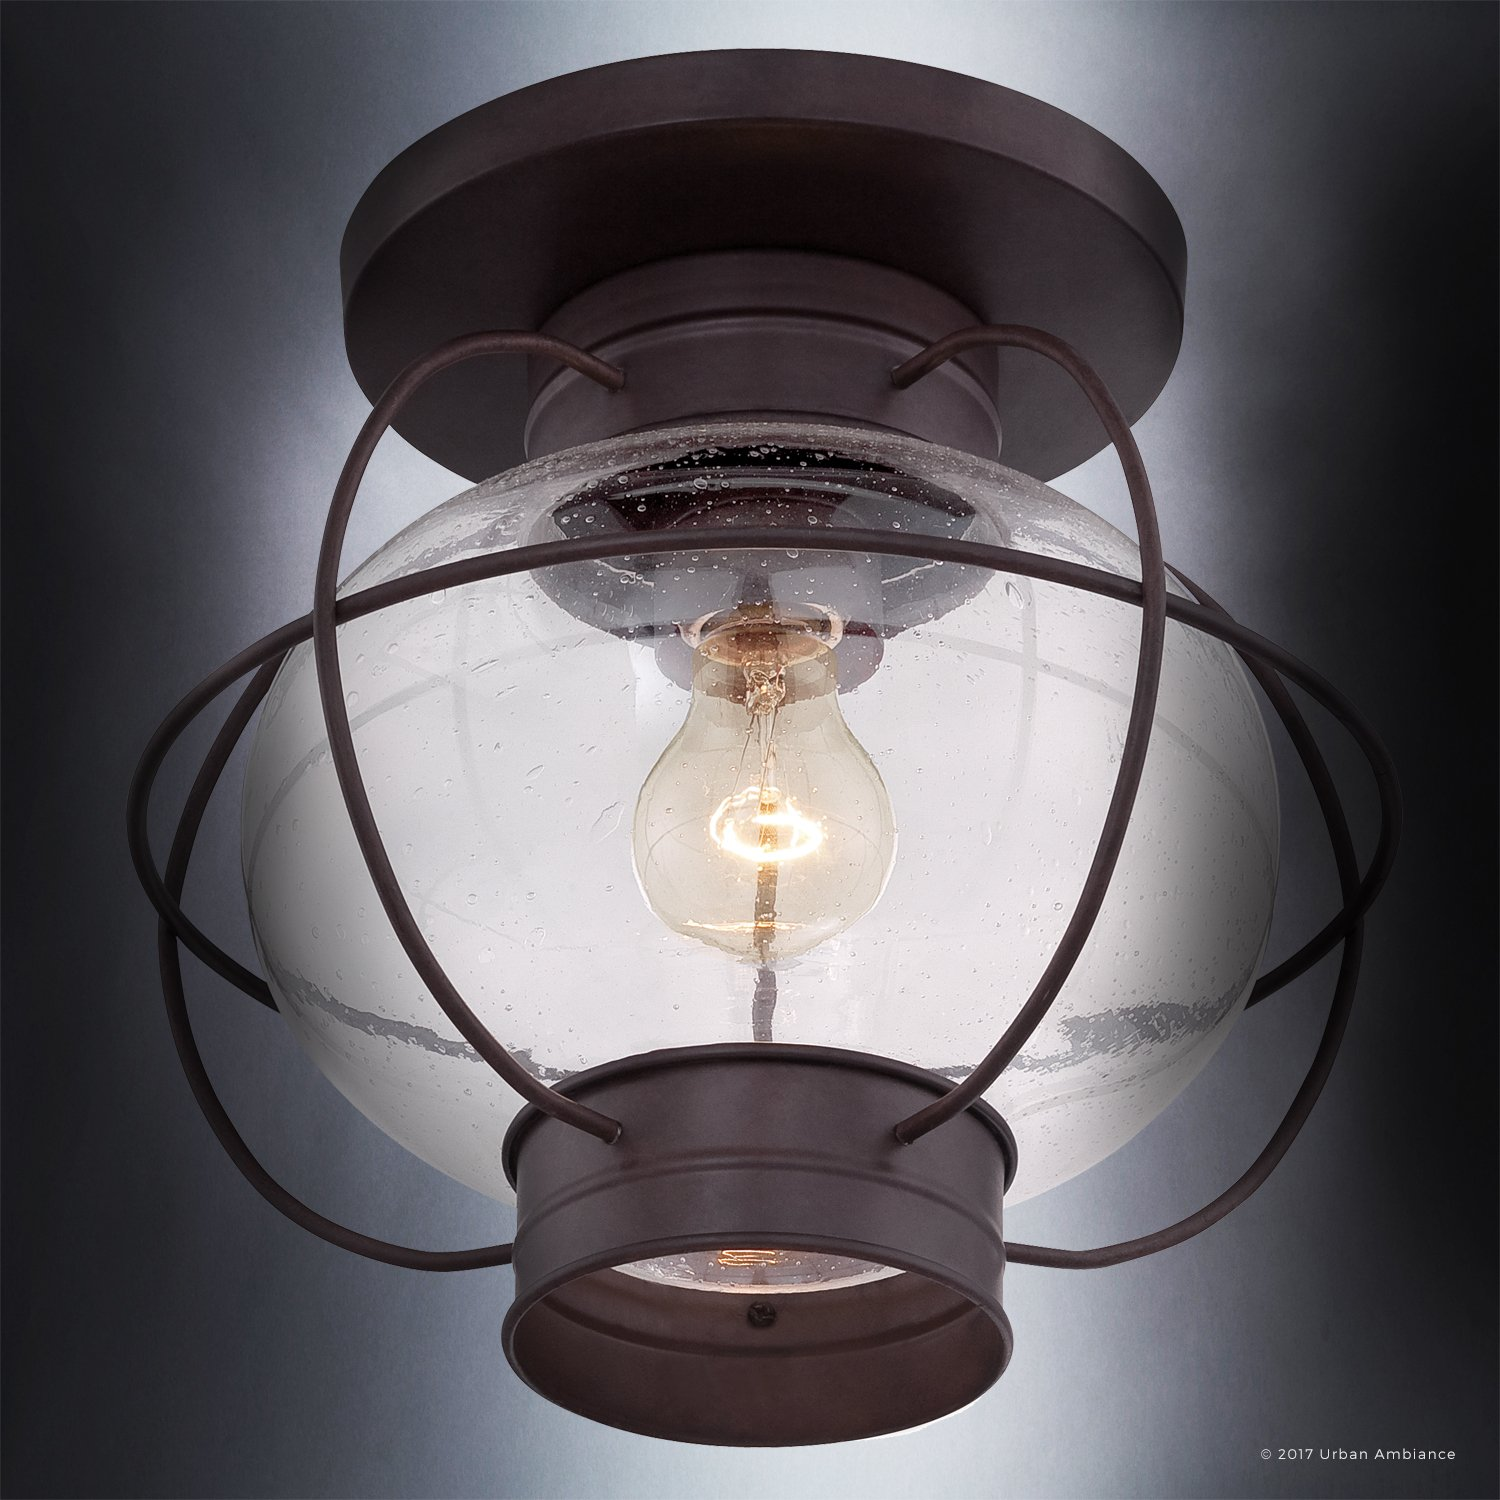 Luxury Nautical Outdoor Ceiling Light, Small Size: 10.5''H x 11.5''W, with Art Deco Style Elements, Cage Design, Bold Tawny Bronze Finish and Seeded Glass, UQL1033 by Urban Ambiance by Urban Ambiance (Image #5)